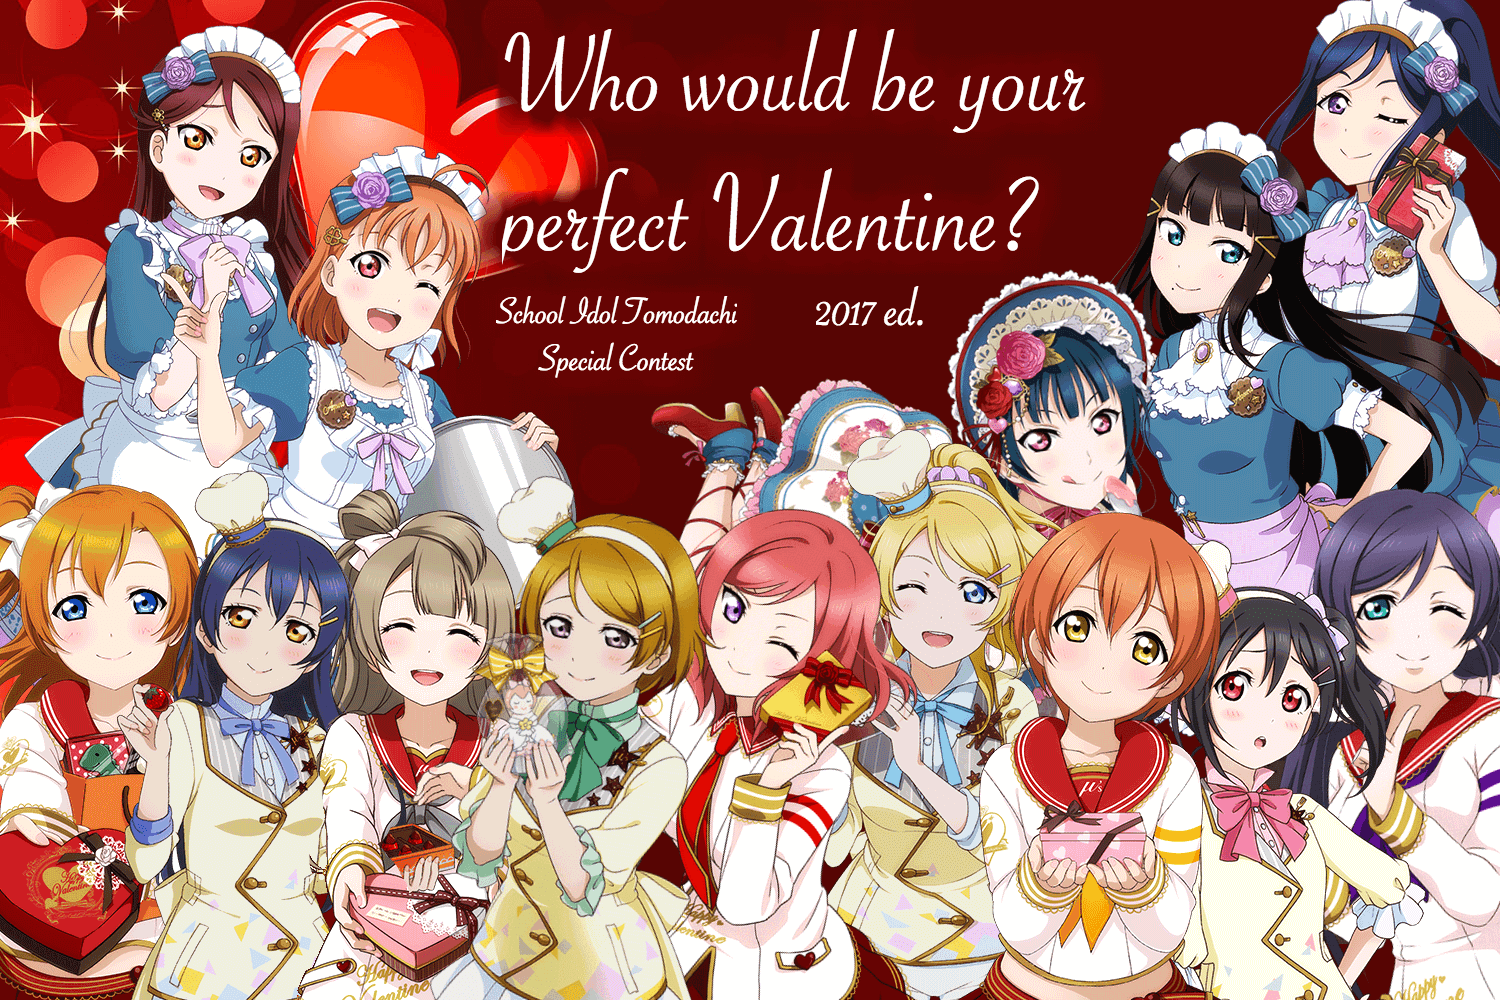 Who would be your perfect Valentine? 2017 ed.